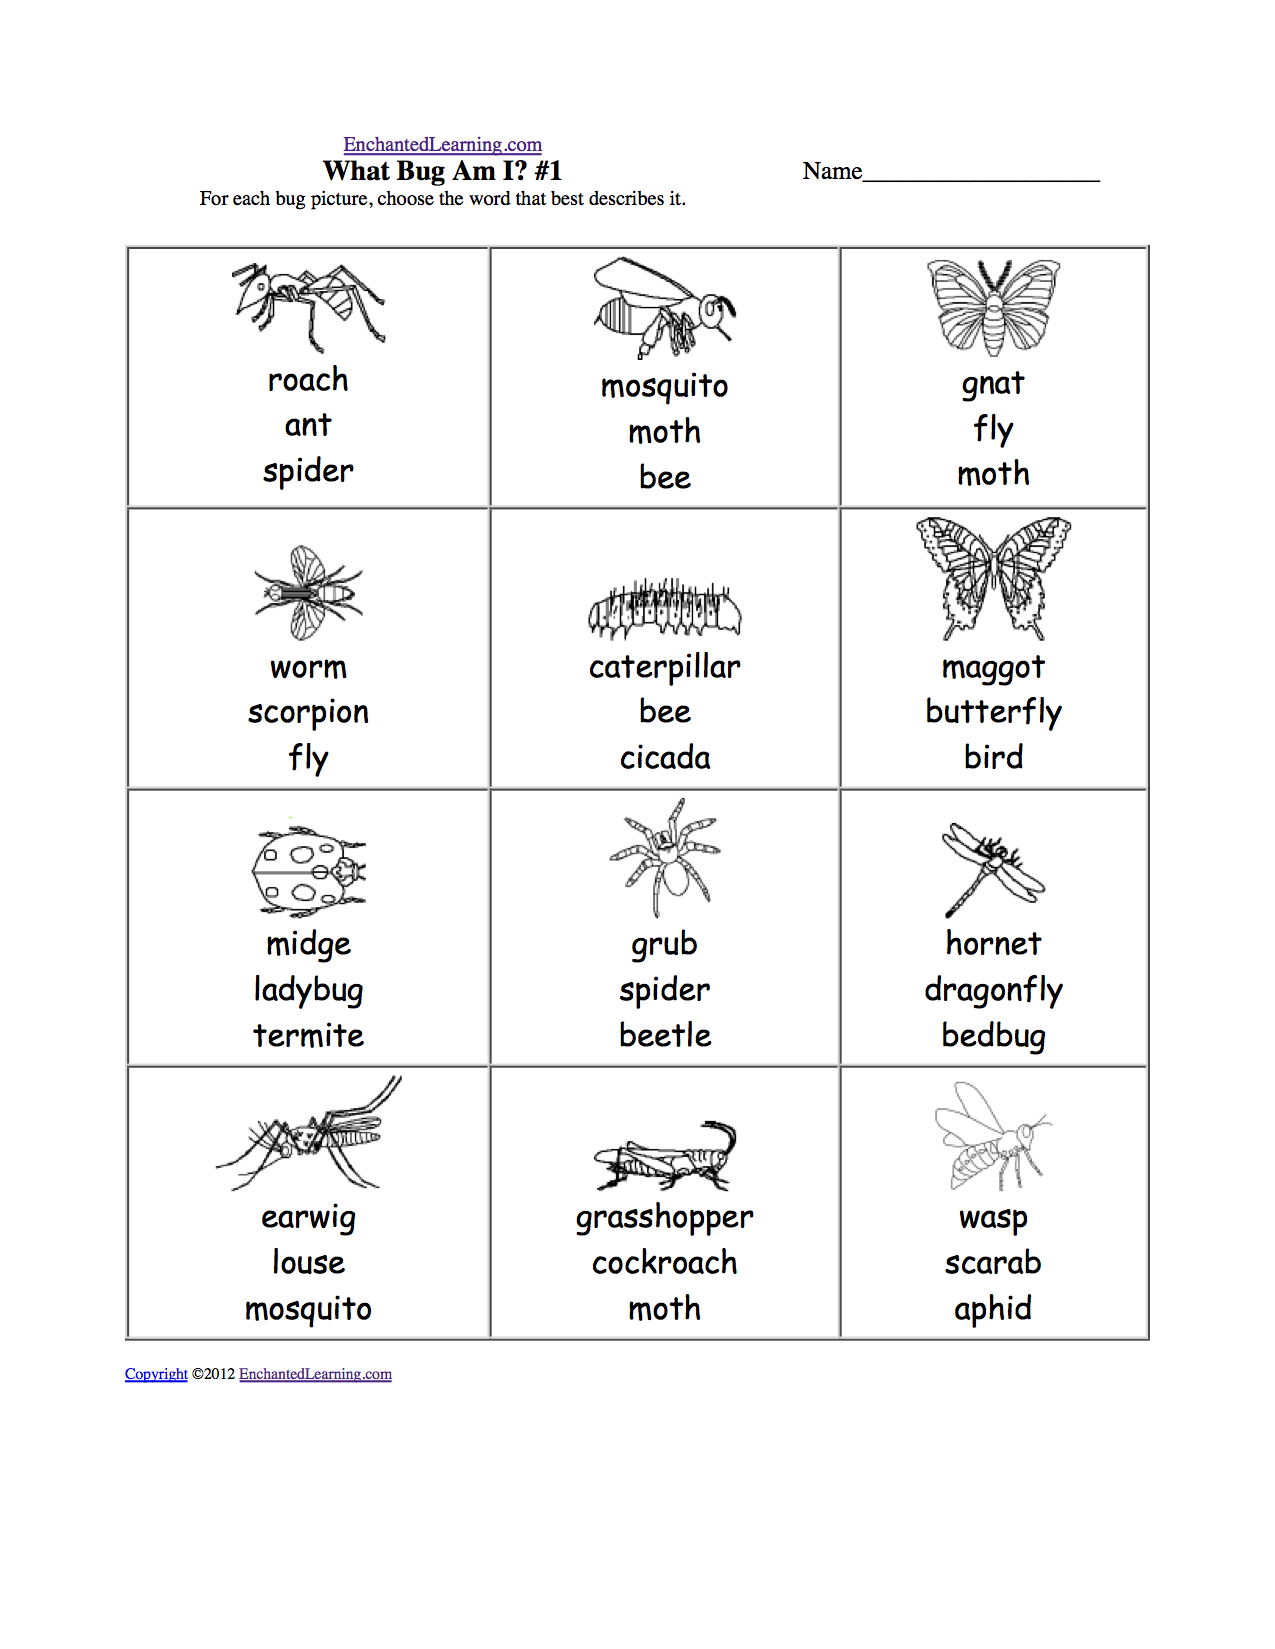 Aldiablosus  Prepossessing What Am I Worksheet Printouts  Enchantedlearningcom With Hot Measuring Practice Worksheets Besides Free Printable Worksheets For Prek Furthermore Free Printable First Grade Spelling Worksheets With Amazing Short Vowel U Worksheets Also Mean Median Worksheets In Addition Identifying Colors Worksheet And Prepositional Phrase Practice Worksheets As Well As Color Multiplication Worksheets Additionally Holt Physics Worksheet Answers From Enchantedlearningcom With Aldiablosus  Hot What Am I Worksheet Printouts  Enchantedlearningcom With Amazing Measuring Practice Worksheets Besides Free Printable Worksheets For Prek Furthermore Free Printable First Grade Spelling Worksheets And Prepossessing Short Vowel U Worksheets Also Mean Median Worksheets In Addition Identifying Colors Worksheet From Enchantedlearningcom